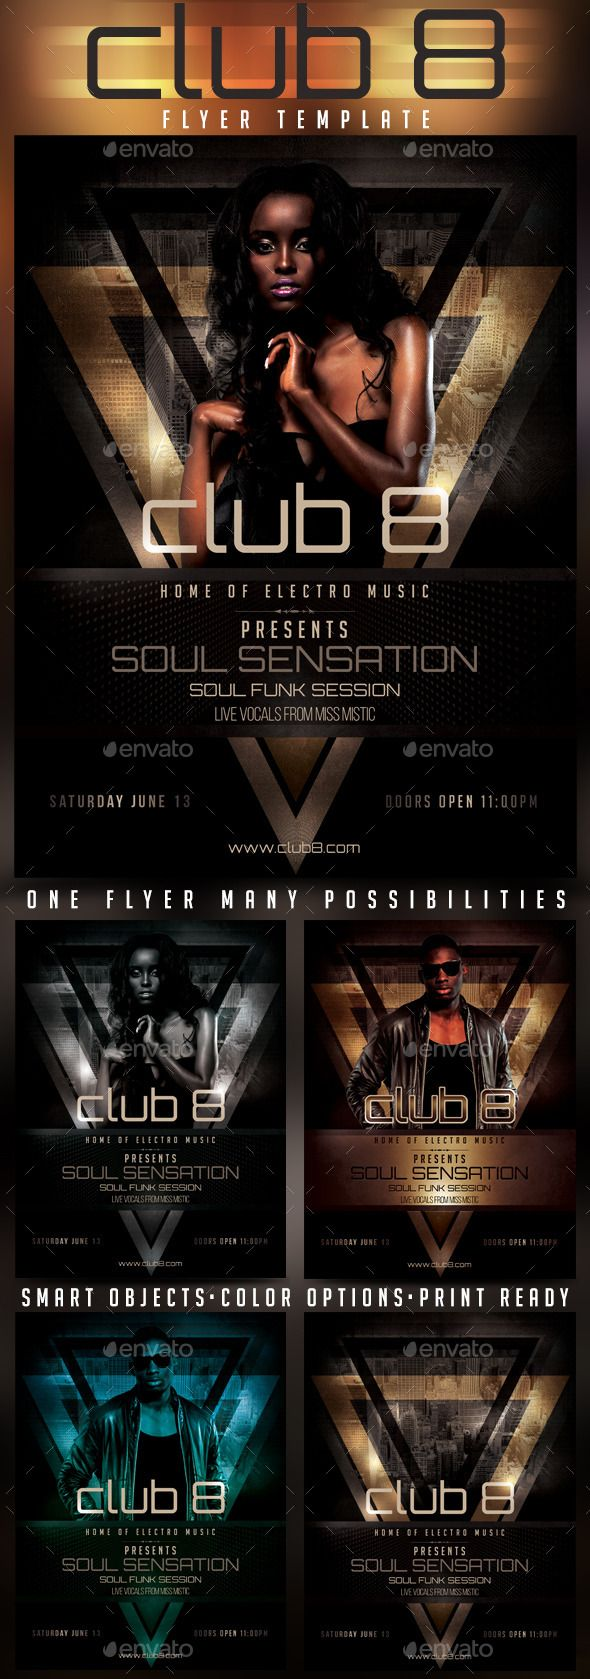 Club 8 Soul Funk Sensation Flyer Template Welcome the second Club 8 classy flyer template for your club or bar event. This time, we move to Soul Funk Beats but as always you can change the text to whatever you want. This design gives you lots of options to play with. Using color options and different blending modes will turn this flyer to something